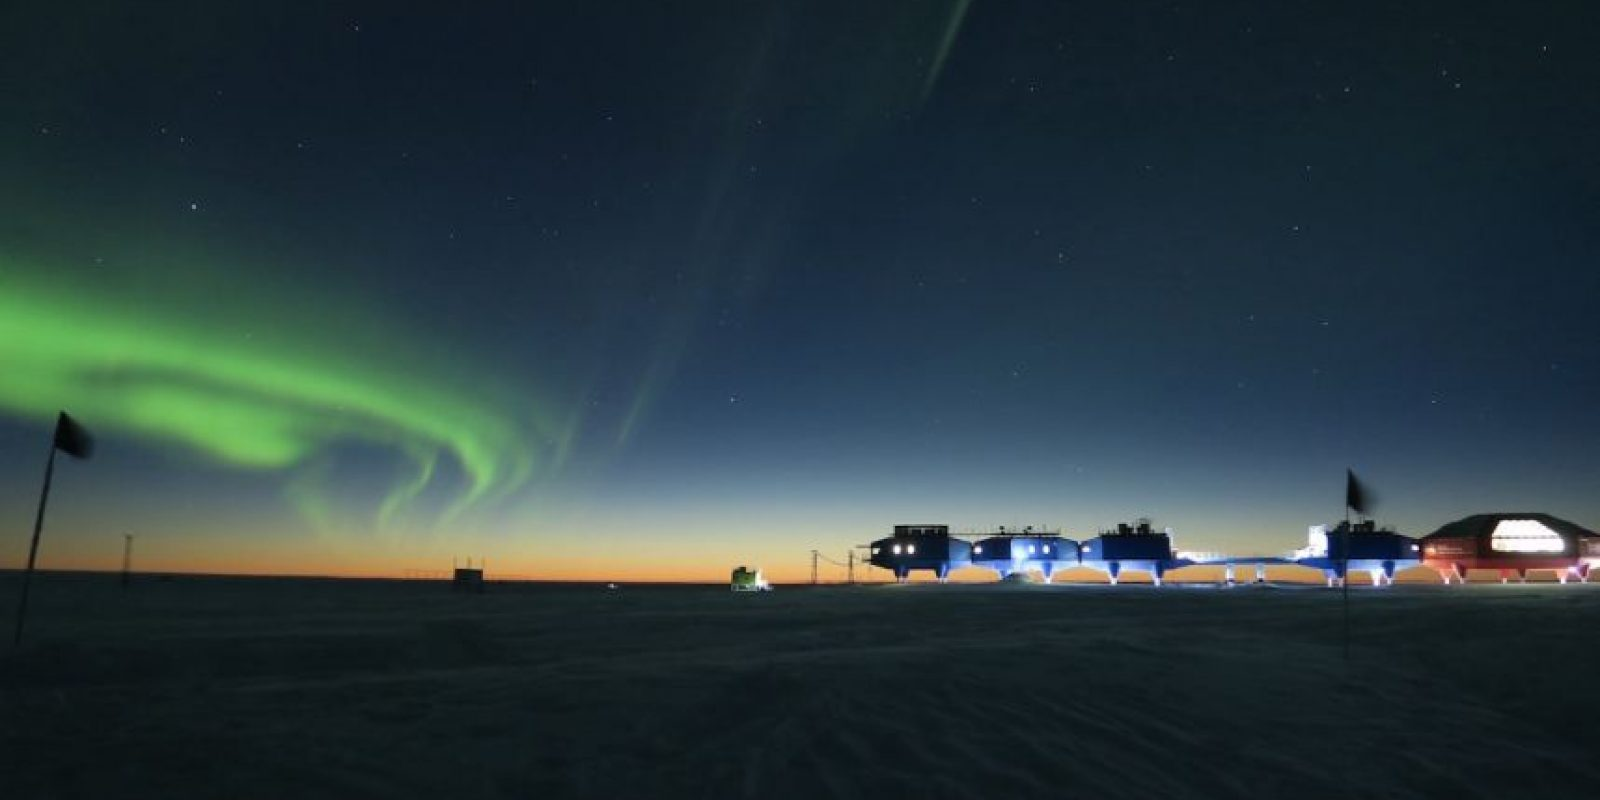 Antarctic Space Station Foto: Richard Inman – Insight Astronomy Photographer of the Year 2016